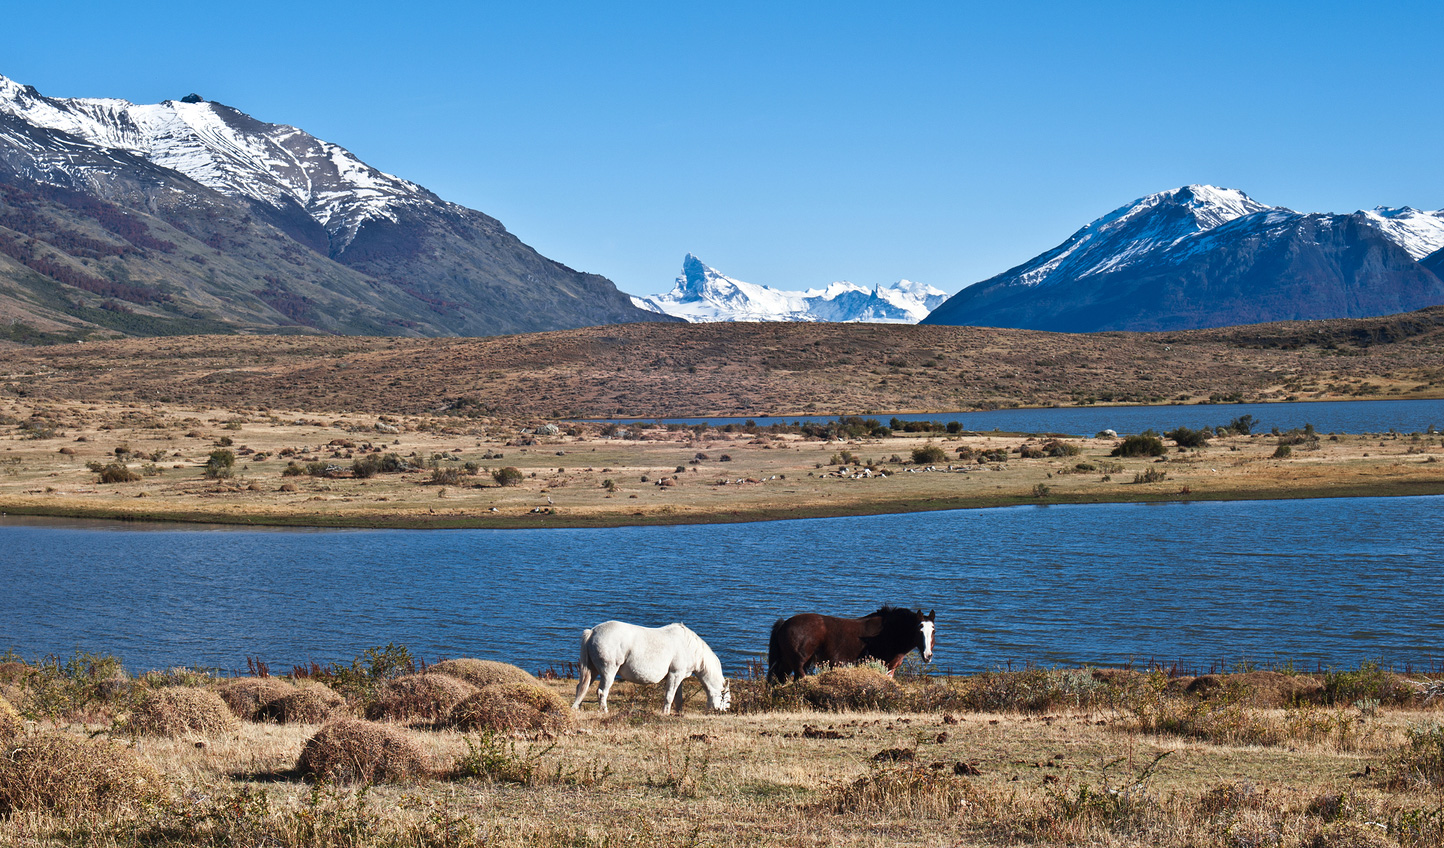 Saddle up and explore Patagonia by horseback